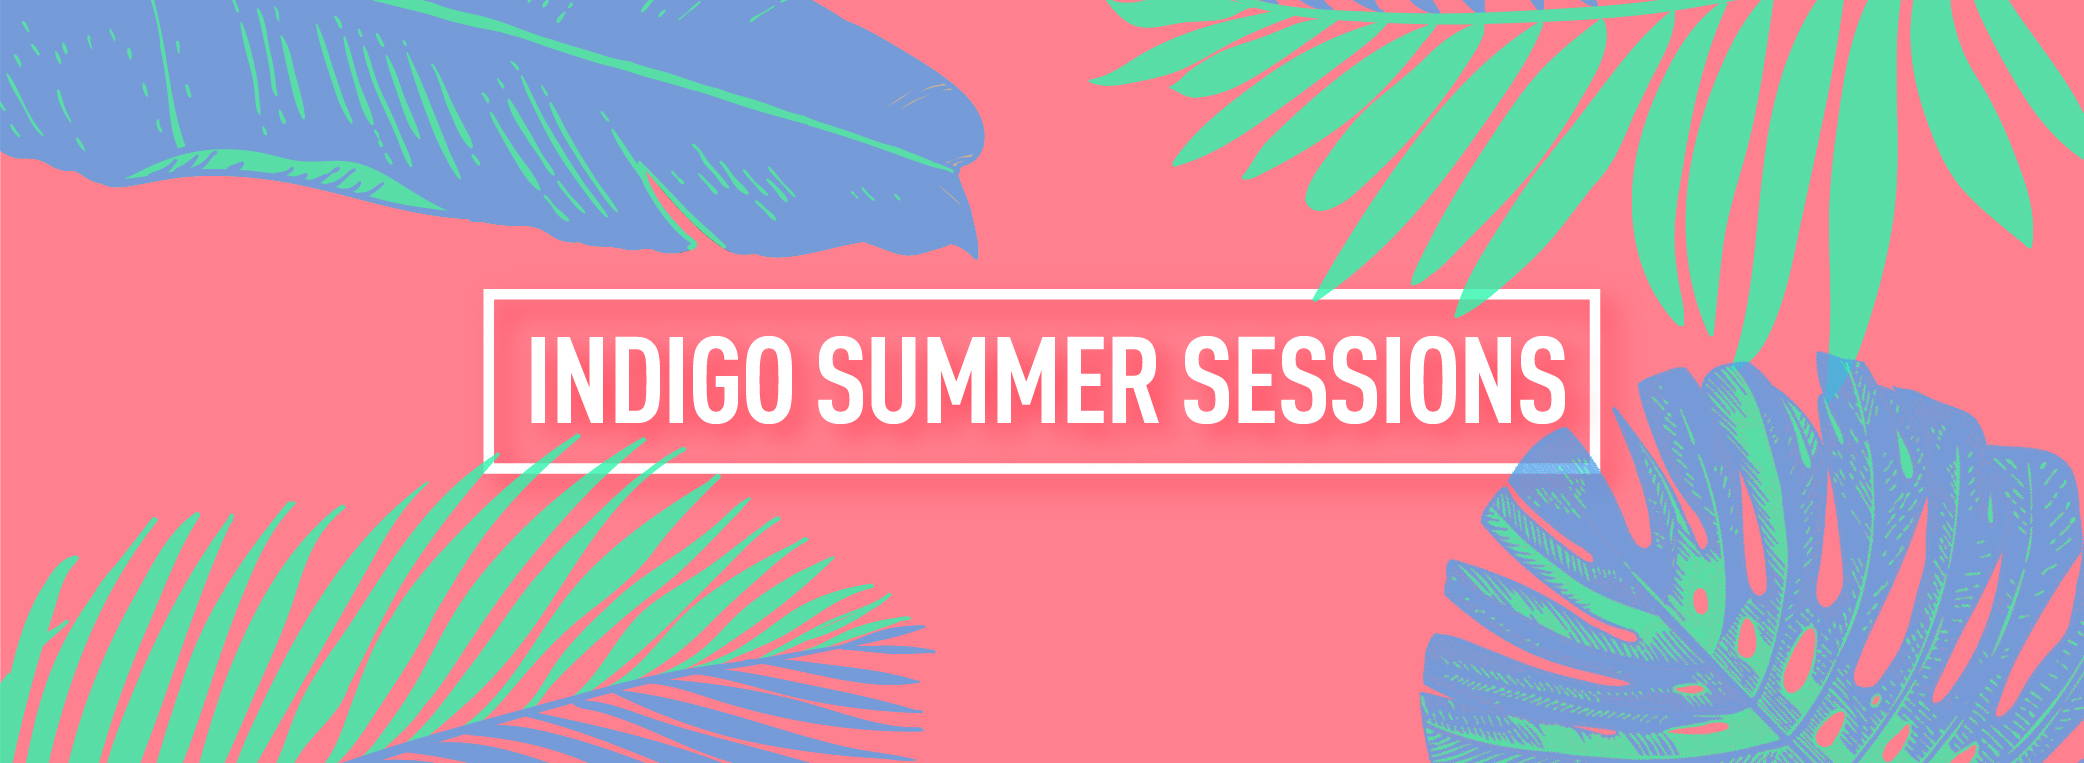 INDIGO SUMMER SESSIONS_Webpage Header